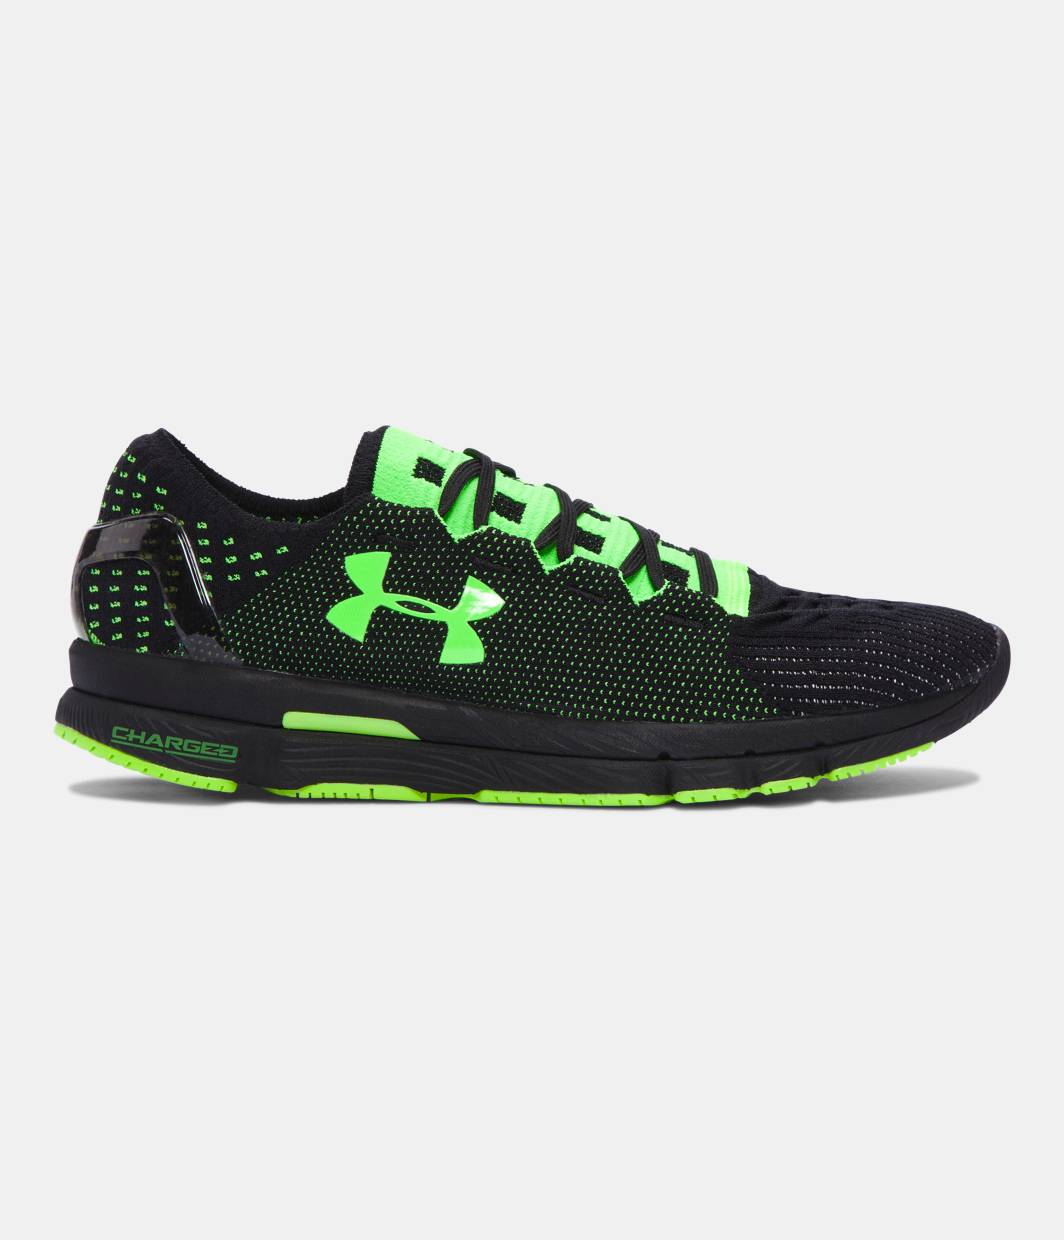 Under Armour Trail Shoes Uk